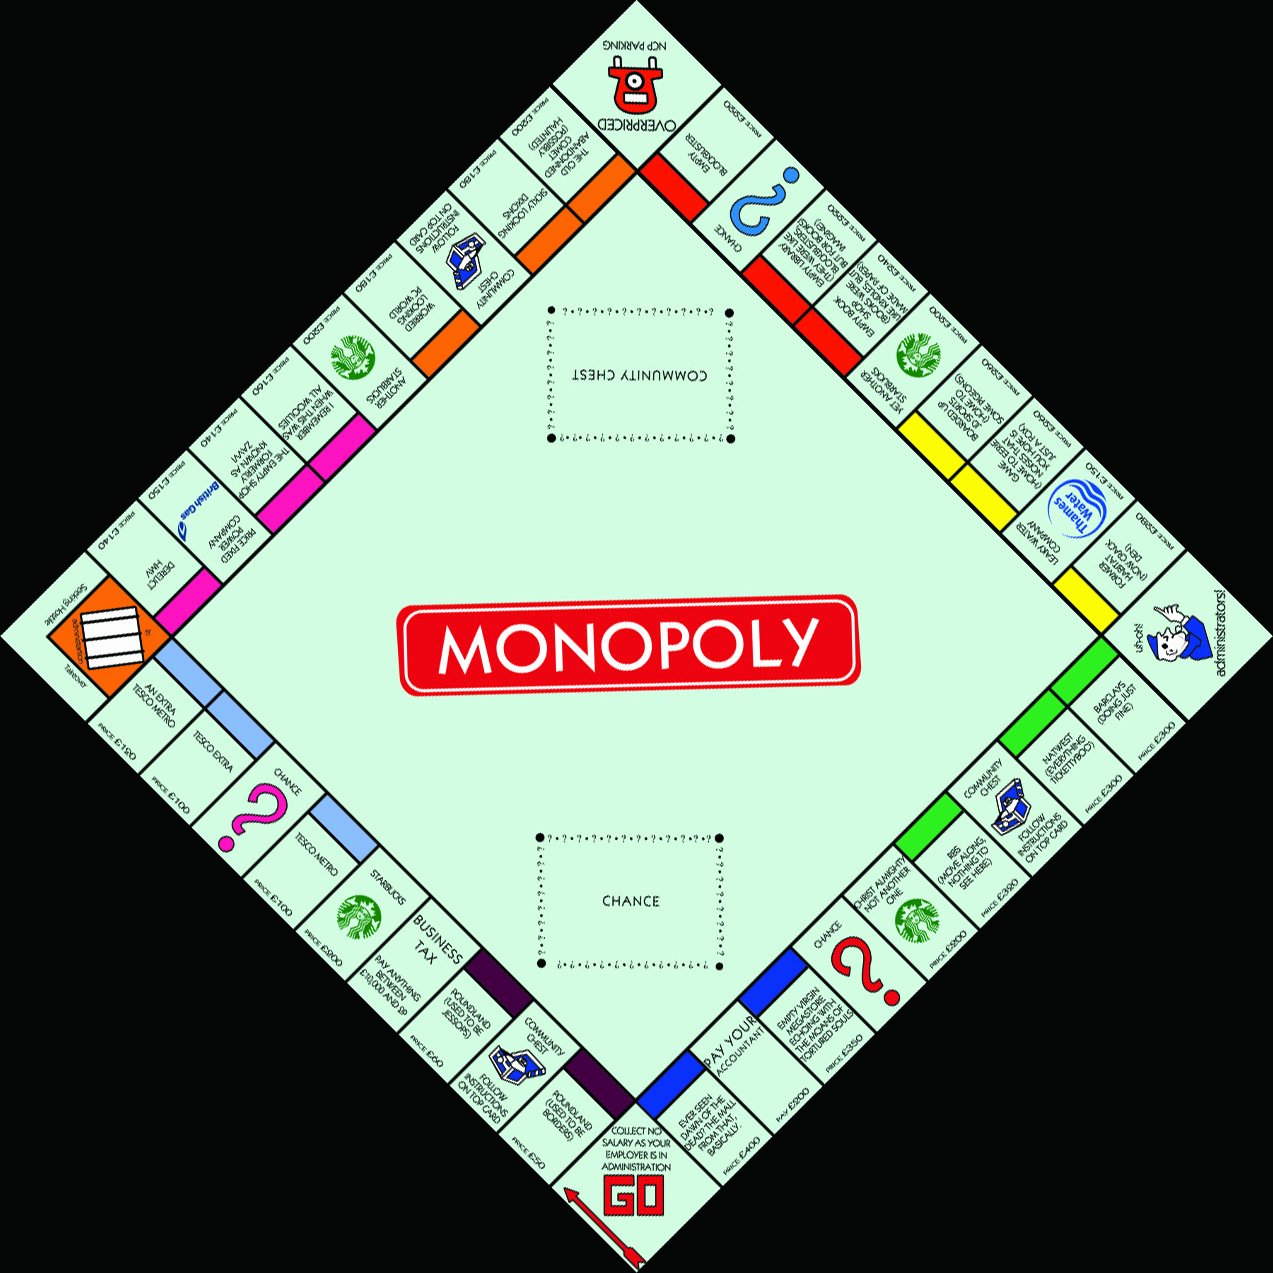 Monopoly Board Layout Beautiful Monopoly Board Modernized – Smcdesign Creative